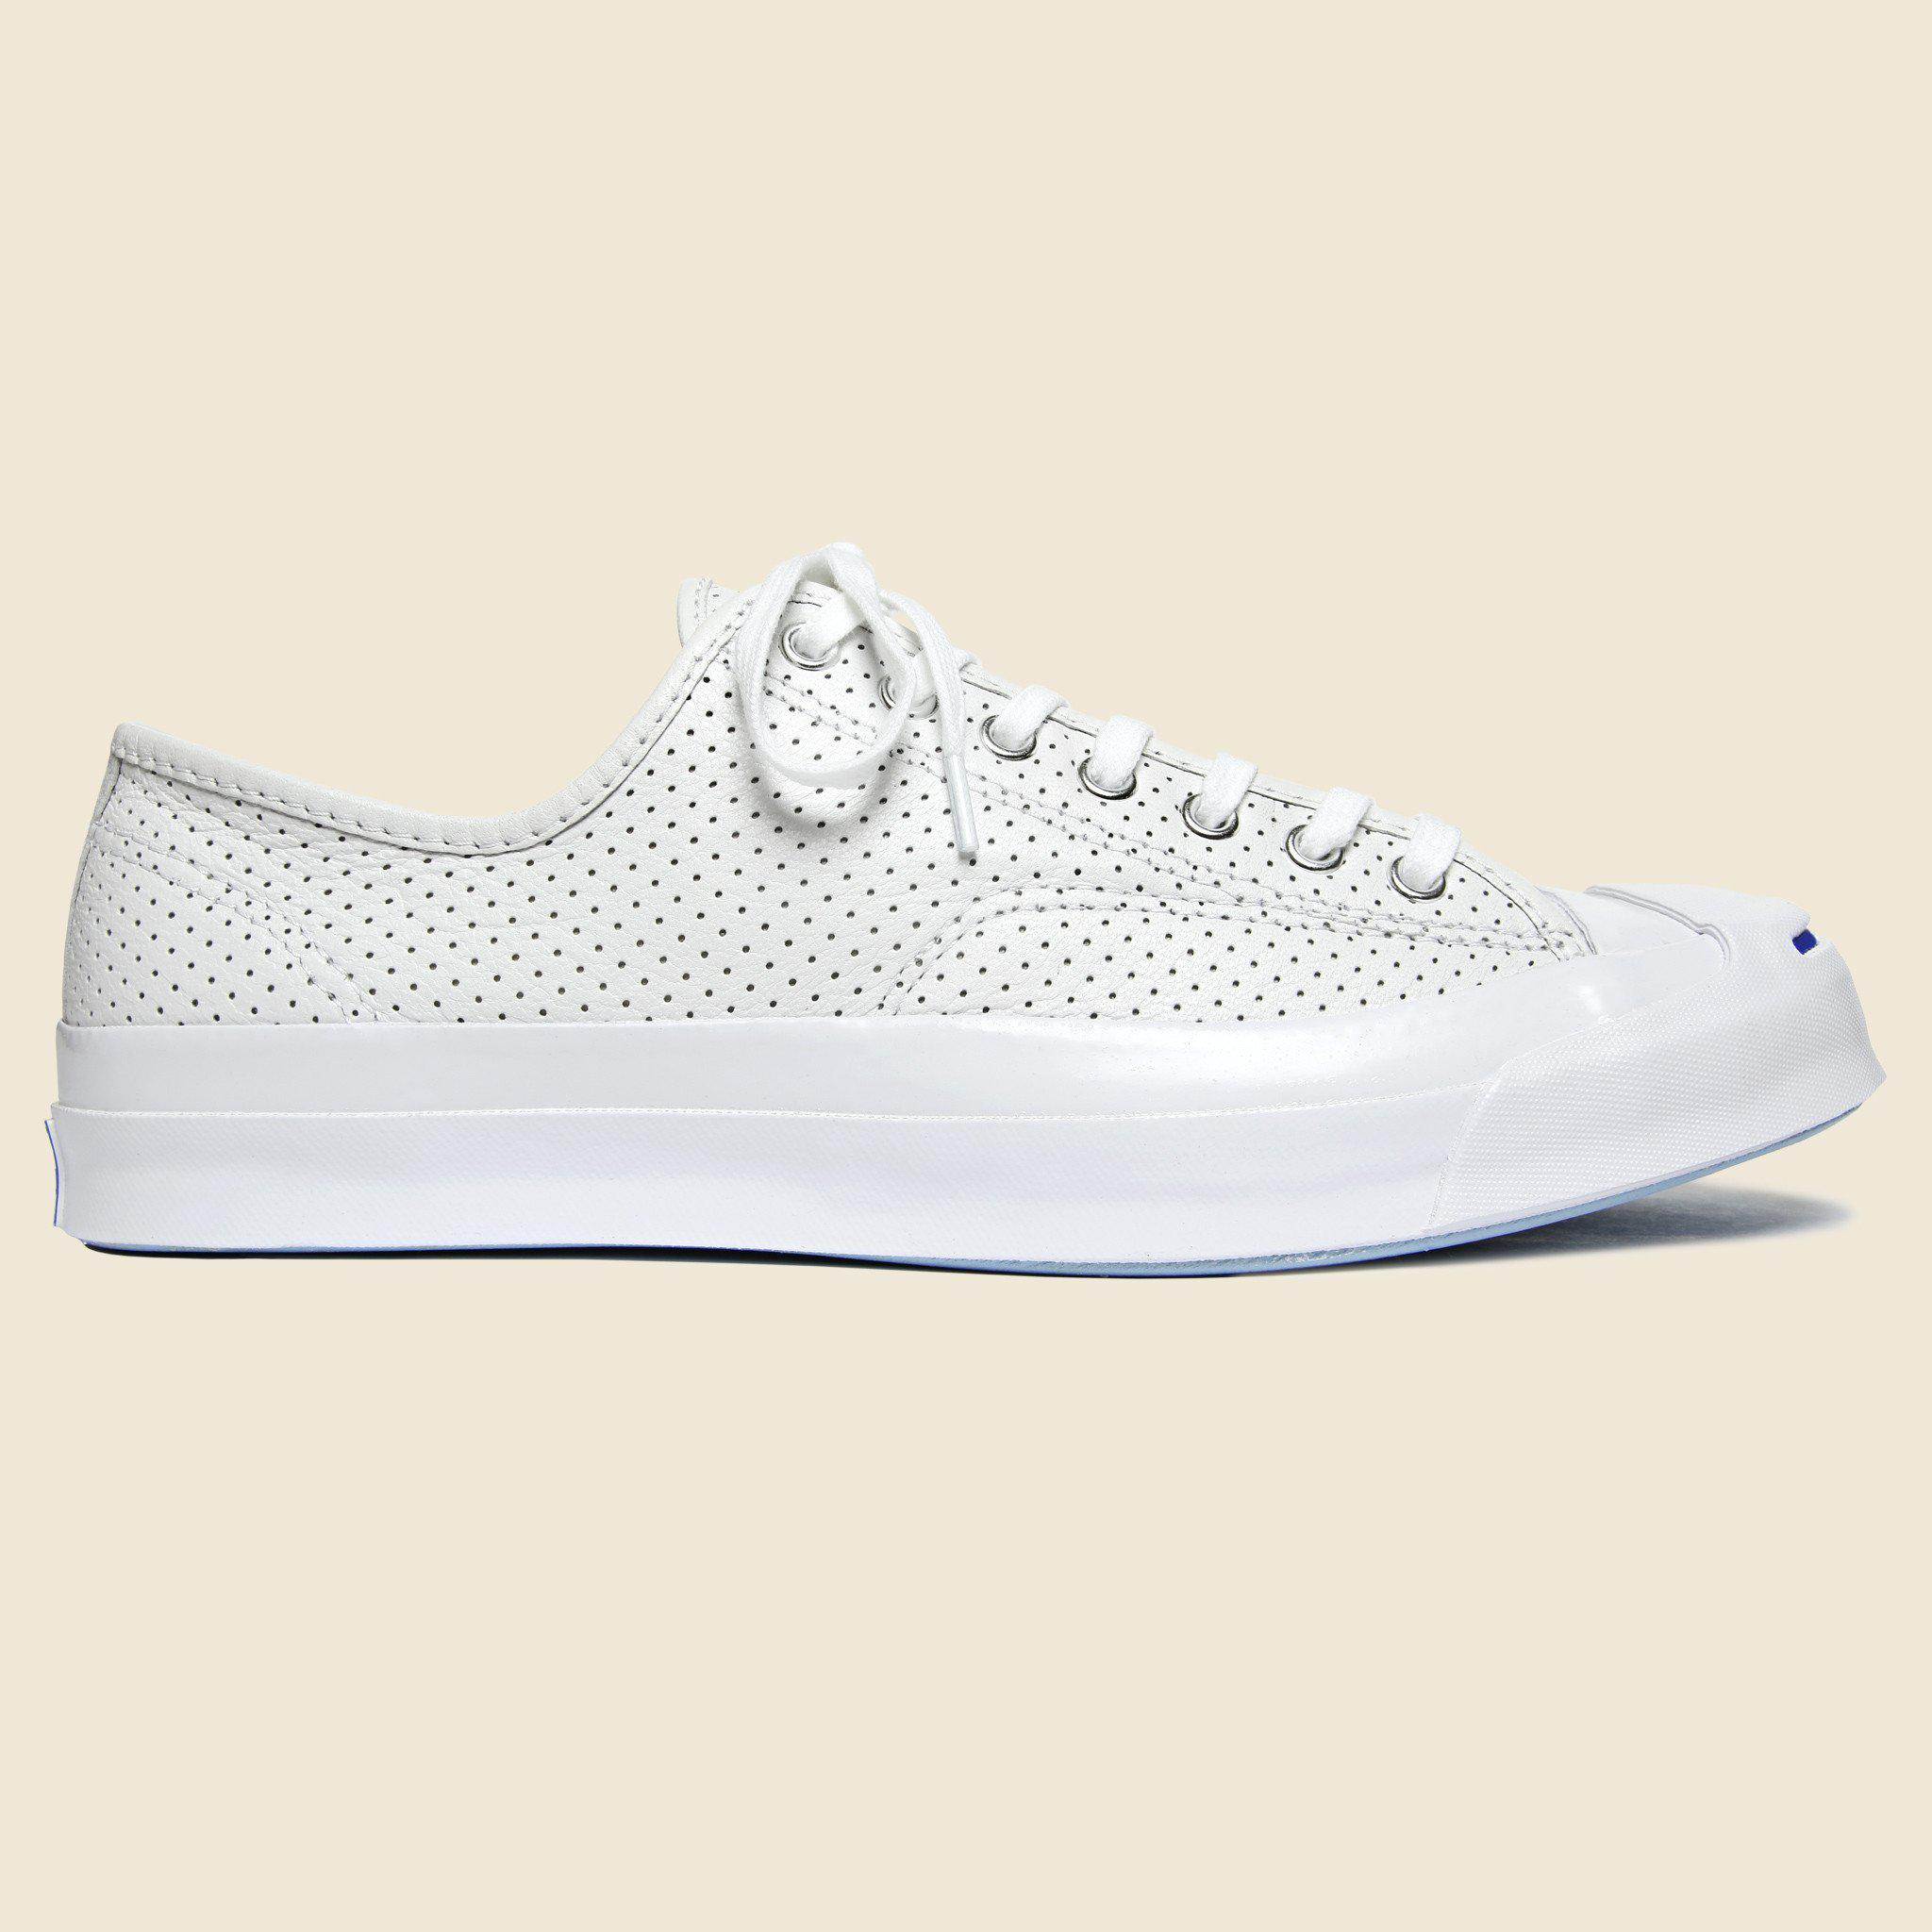 f9f6b654b403b0 Lyst - Converse Jack Purcell Signature Perforated Leather Sneakers ...